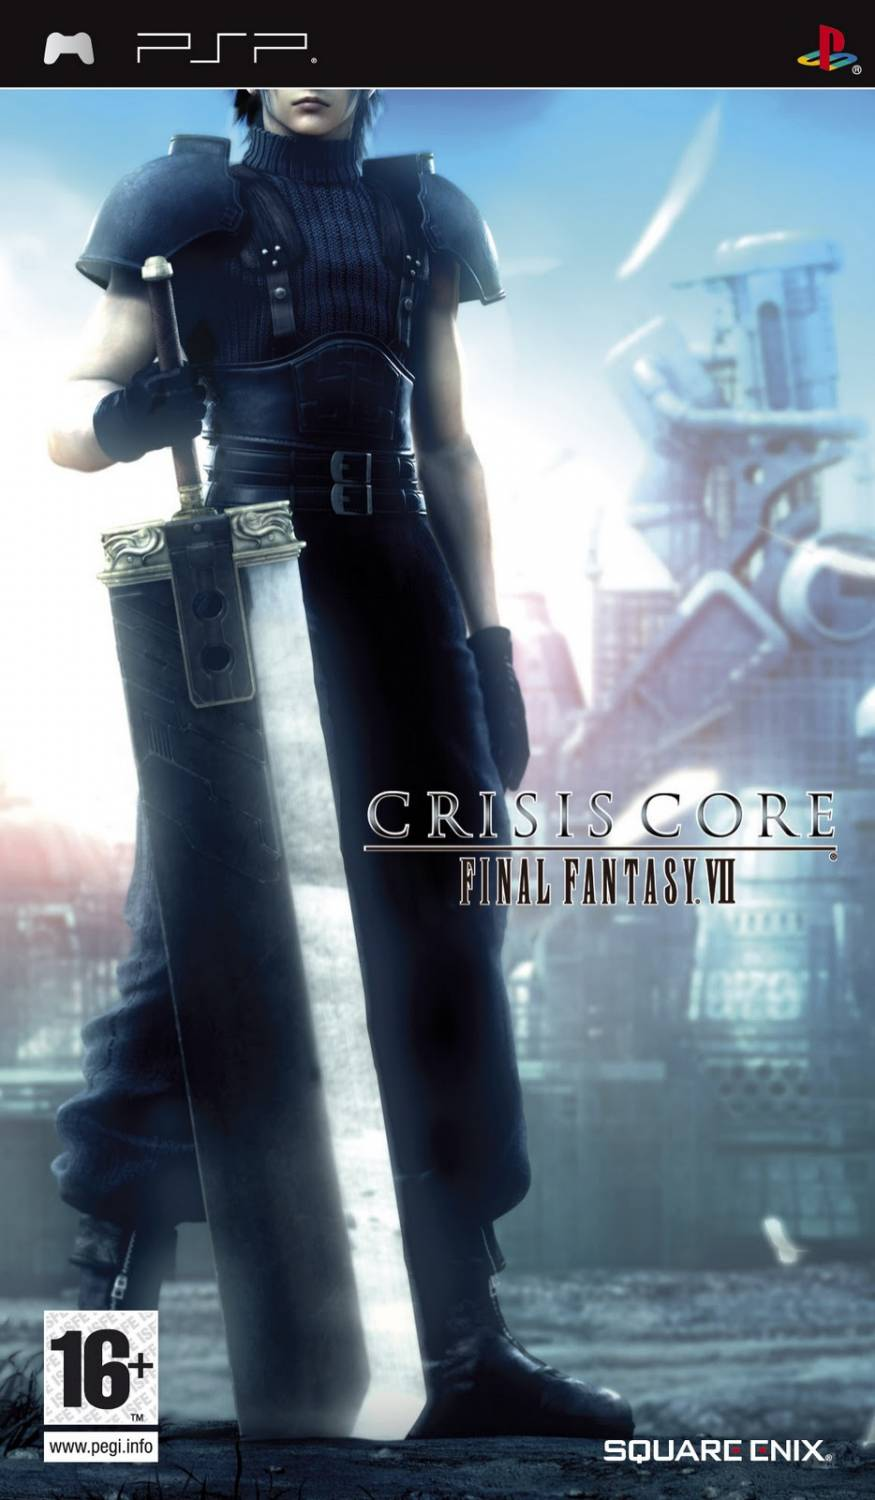 Final Fantasy VII - Crisis Core (RUS) [PSP]